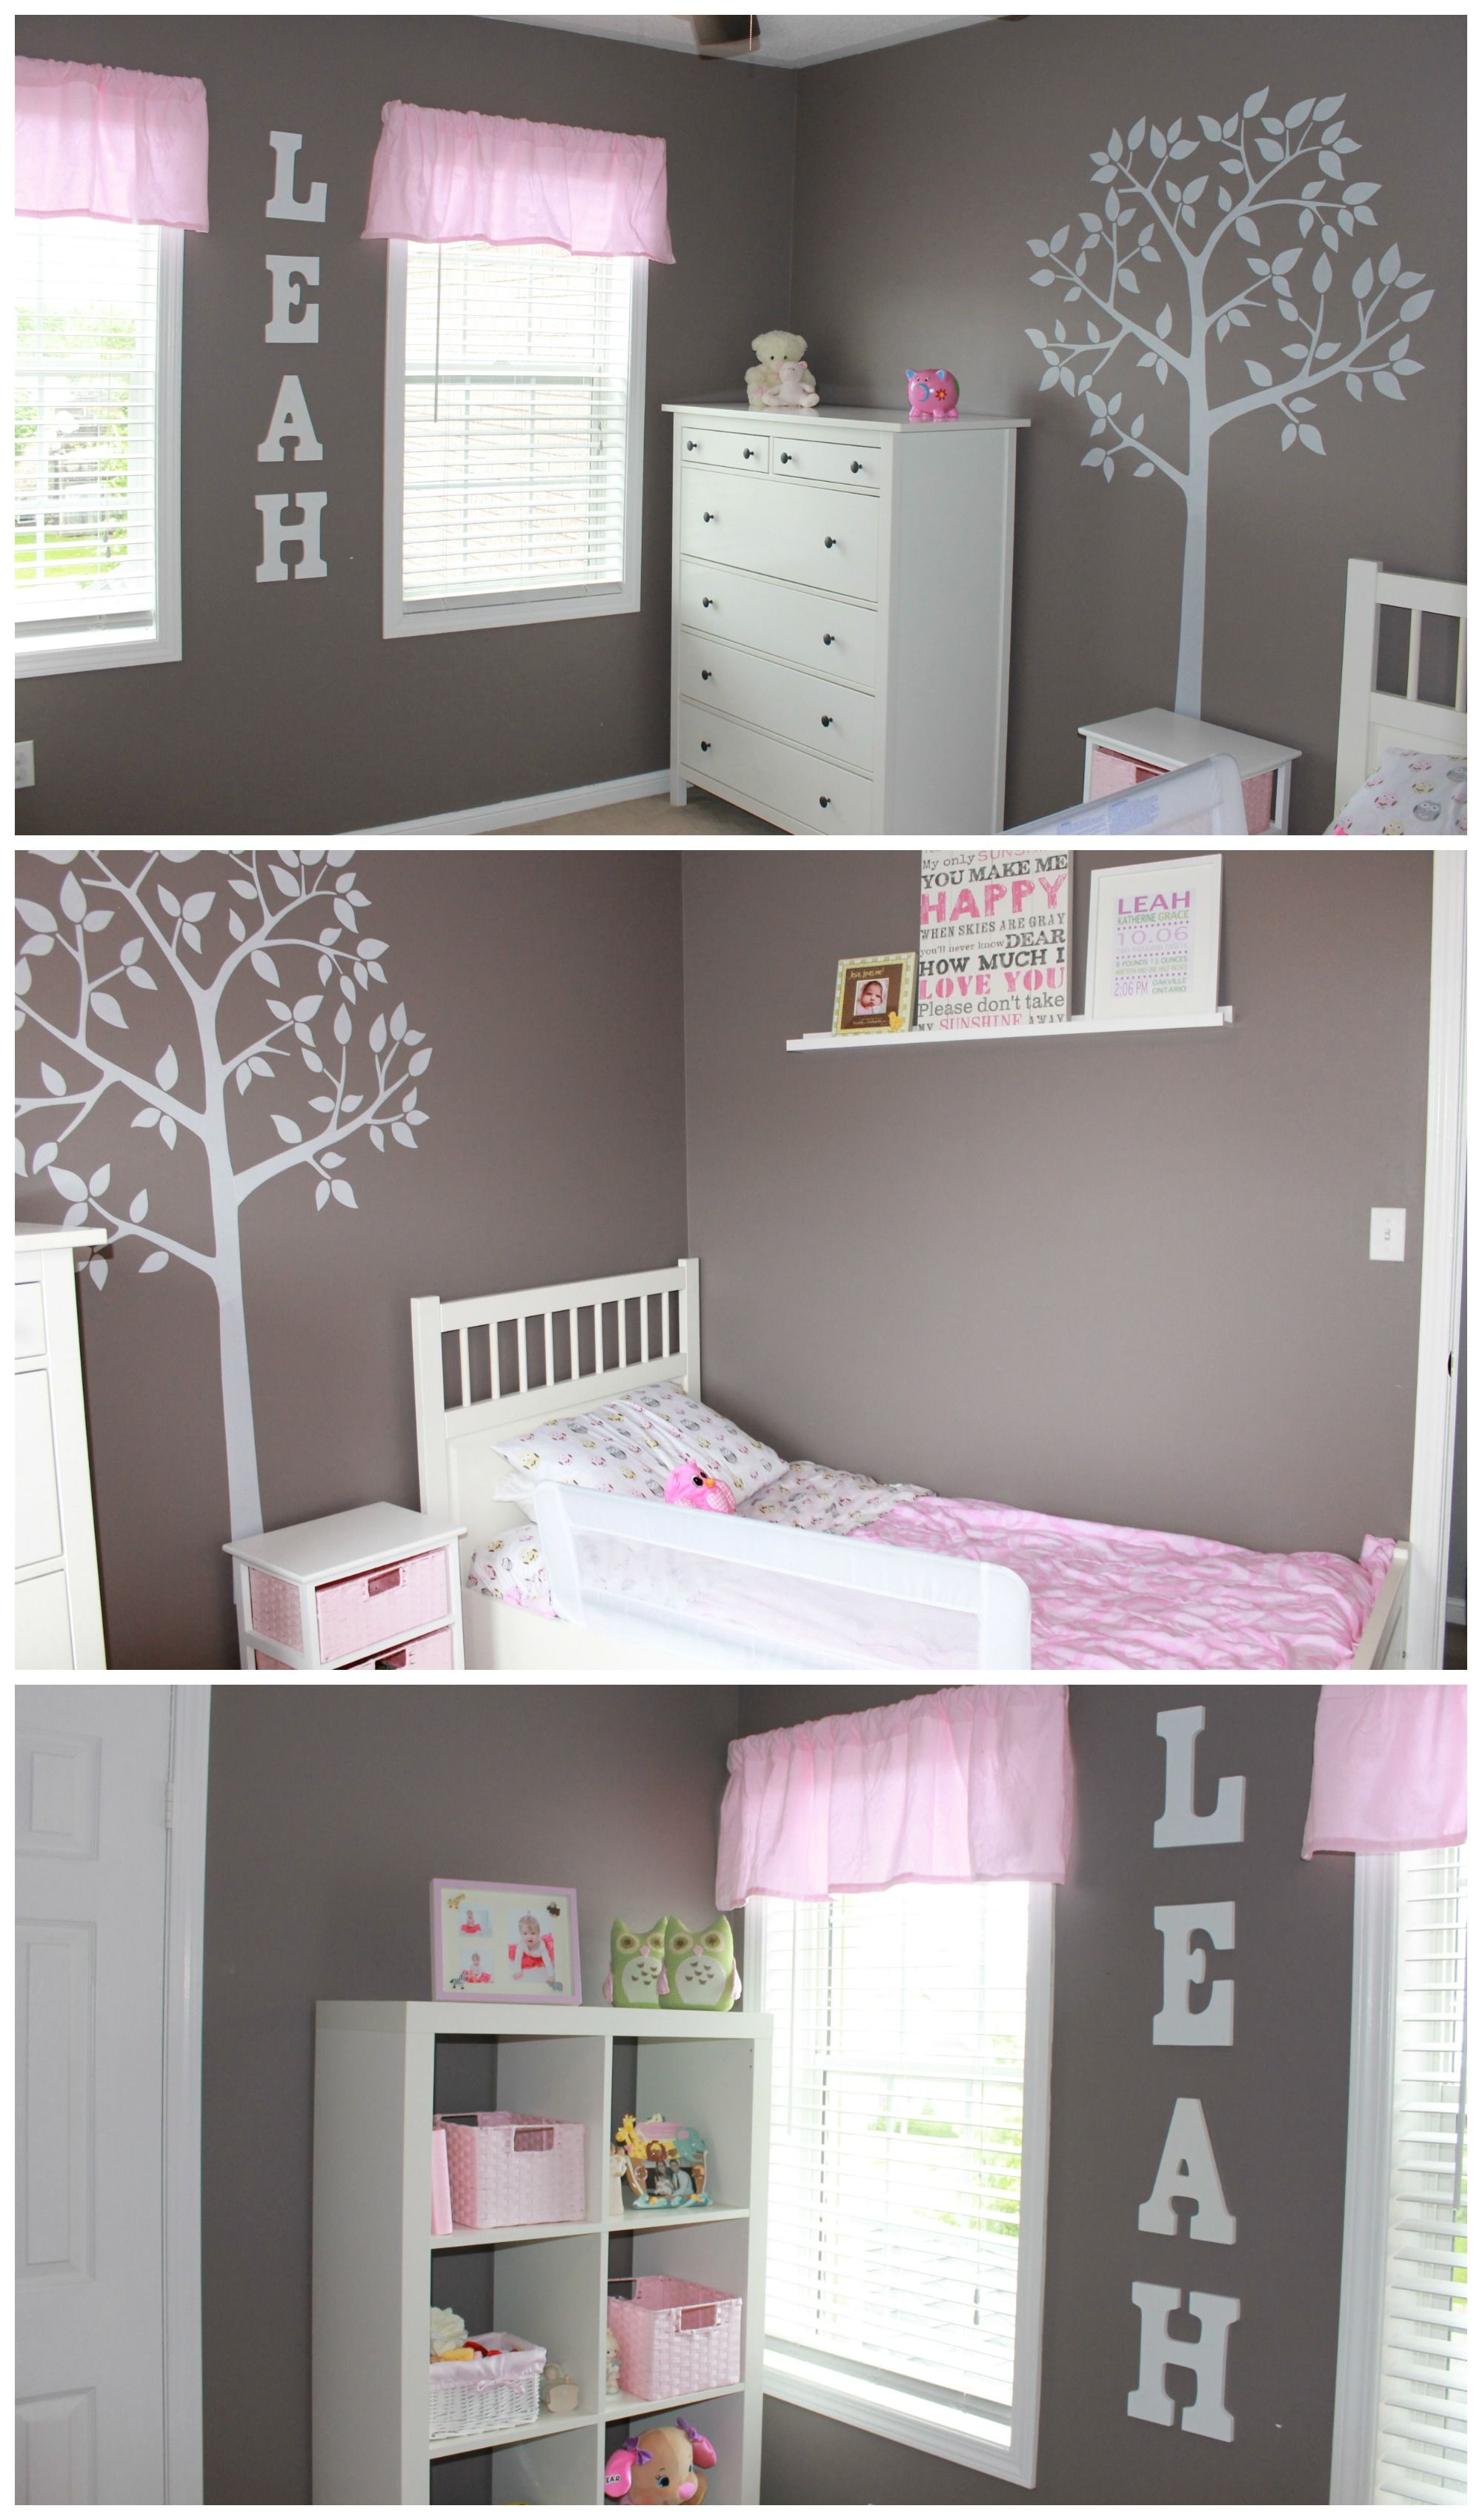 big girl room toddler bedrooms toddler rooms toddler on diy home decor on a budget apartment ideas id=91863